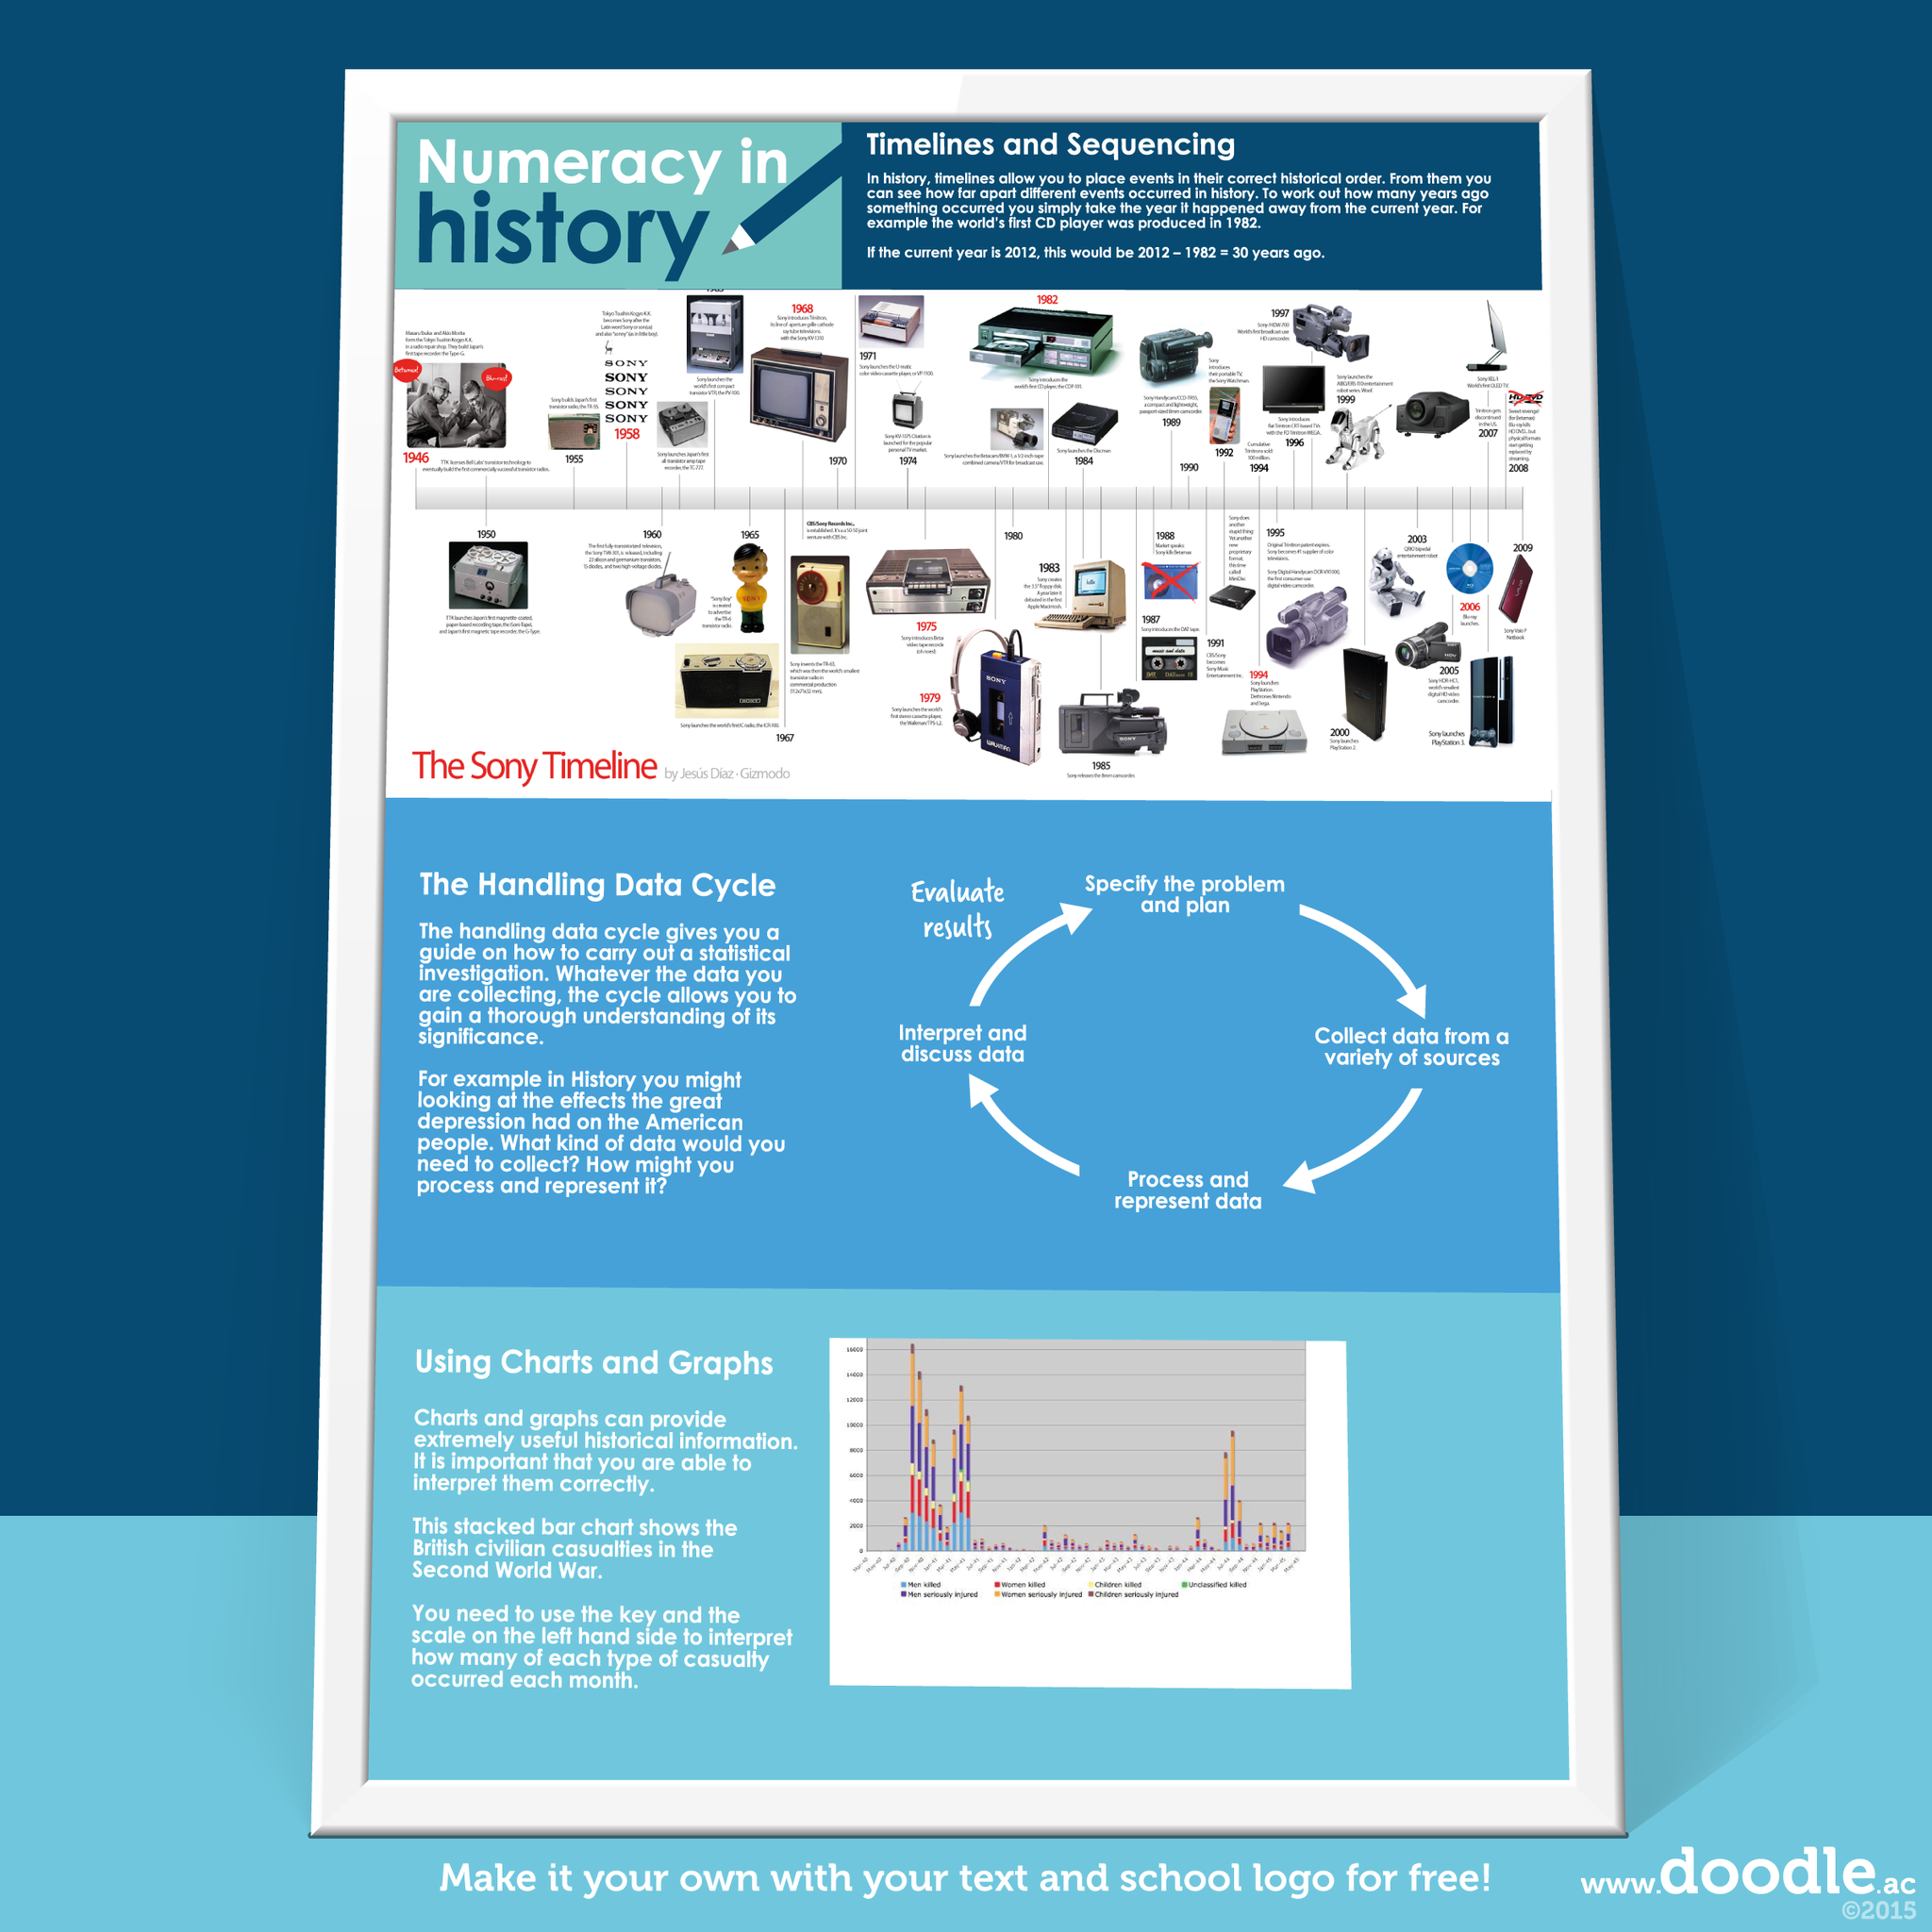 numeracy in history poster - doodle education